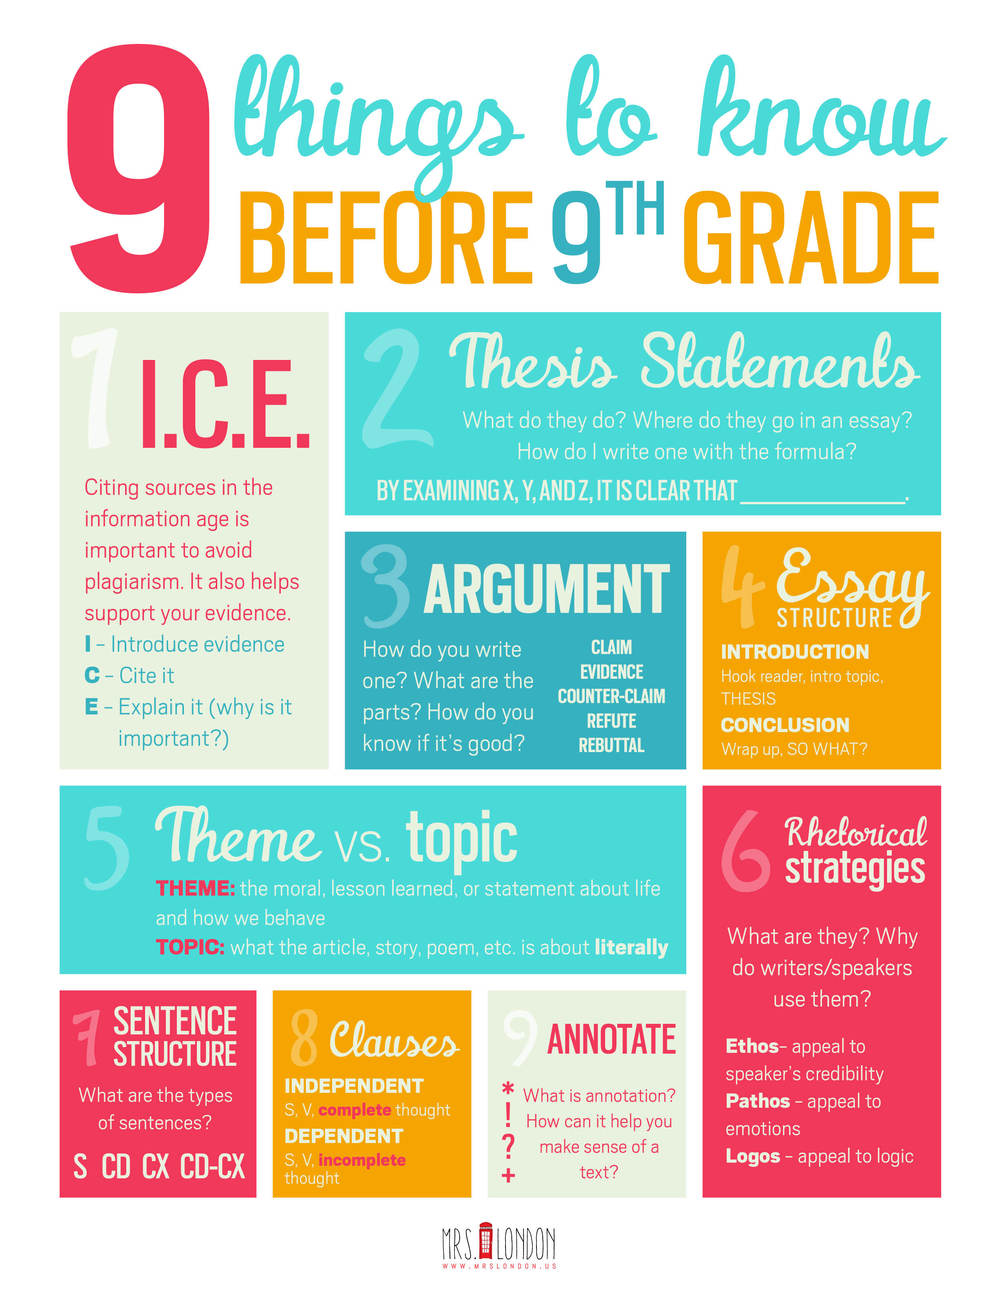 """Get an editable version of the """"9 Things"""" poster belowhere on TPTand make it your own! ******You must have access to Adobe InDesign or Lucidpress in order to edit the document(free trials for both available).******"""